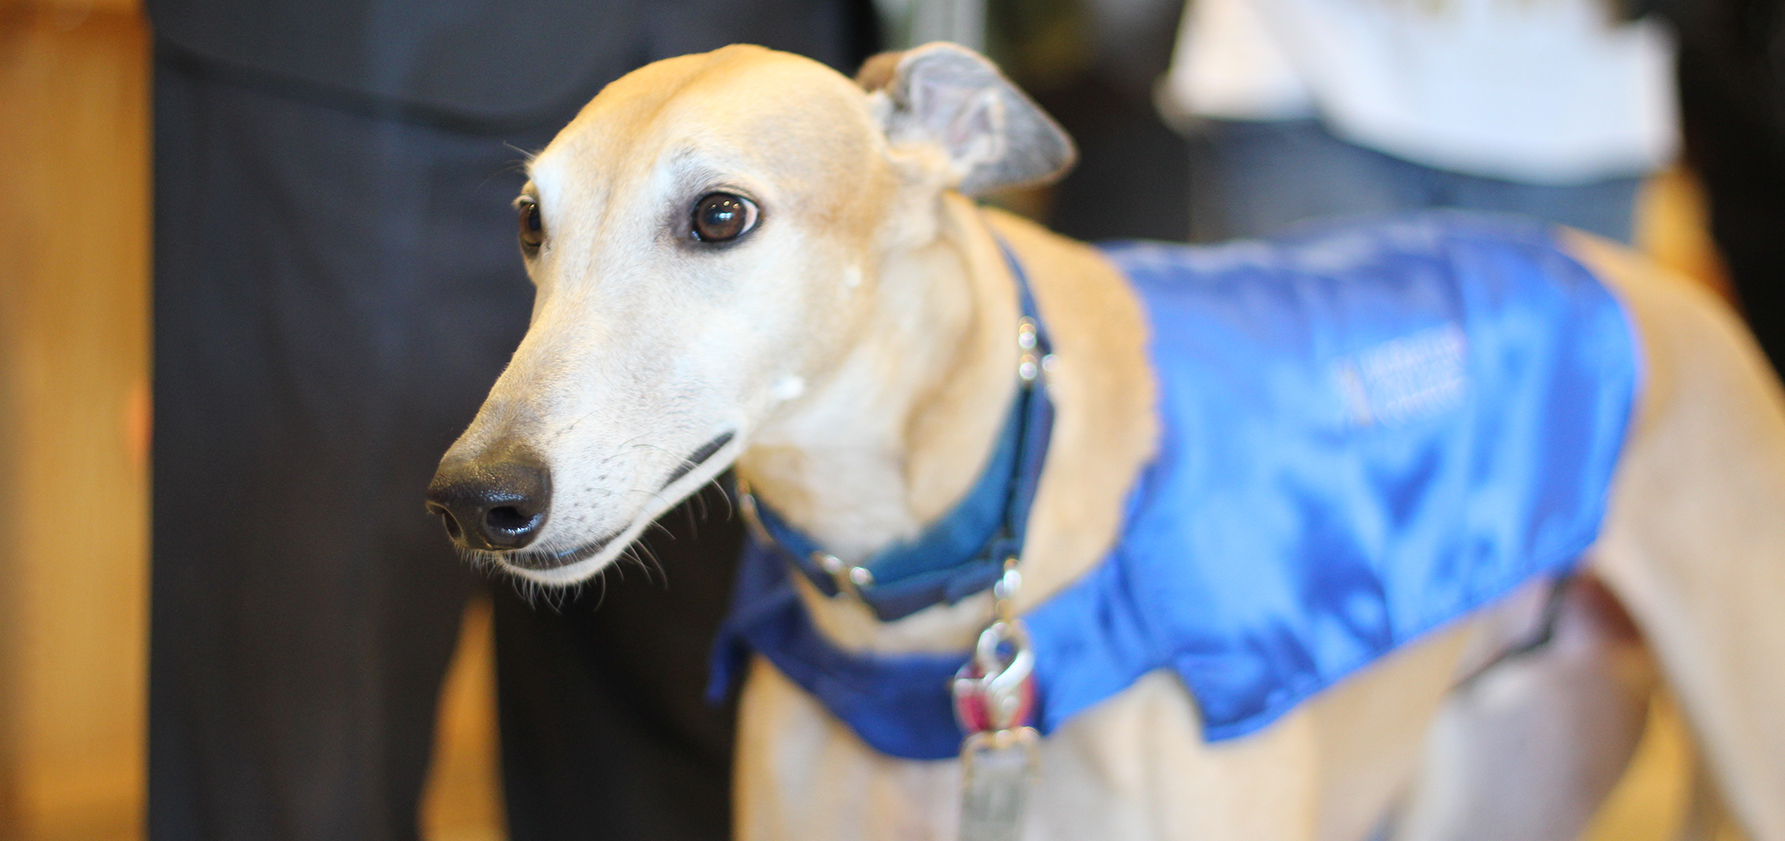 Mo, the greyhound